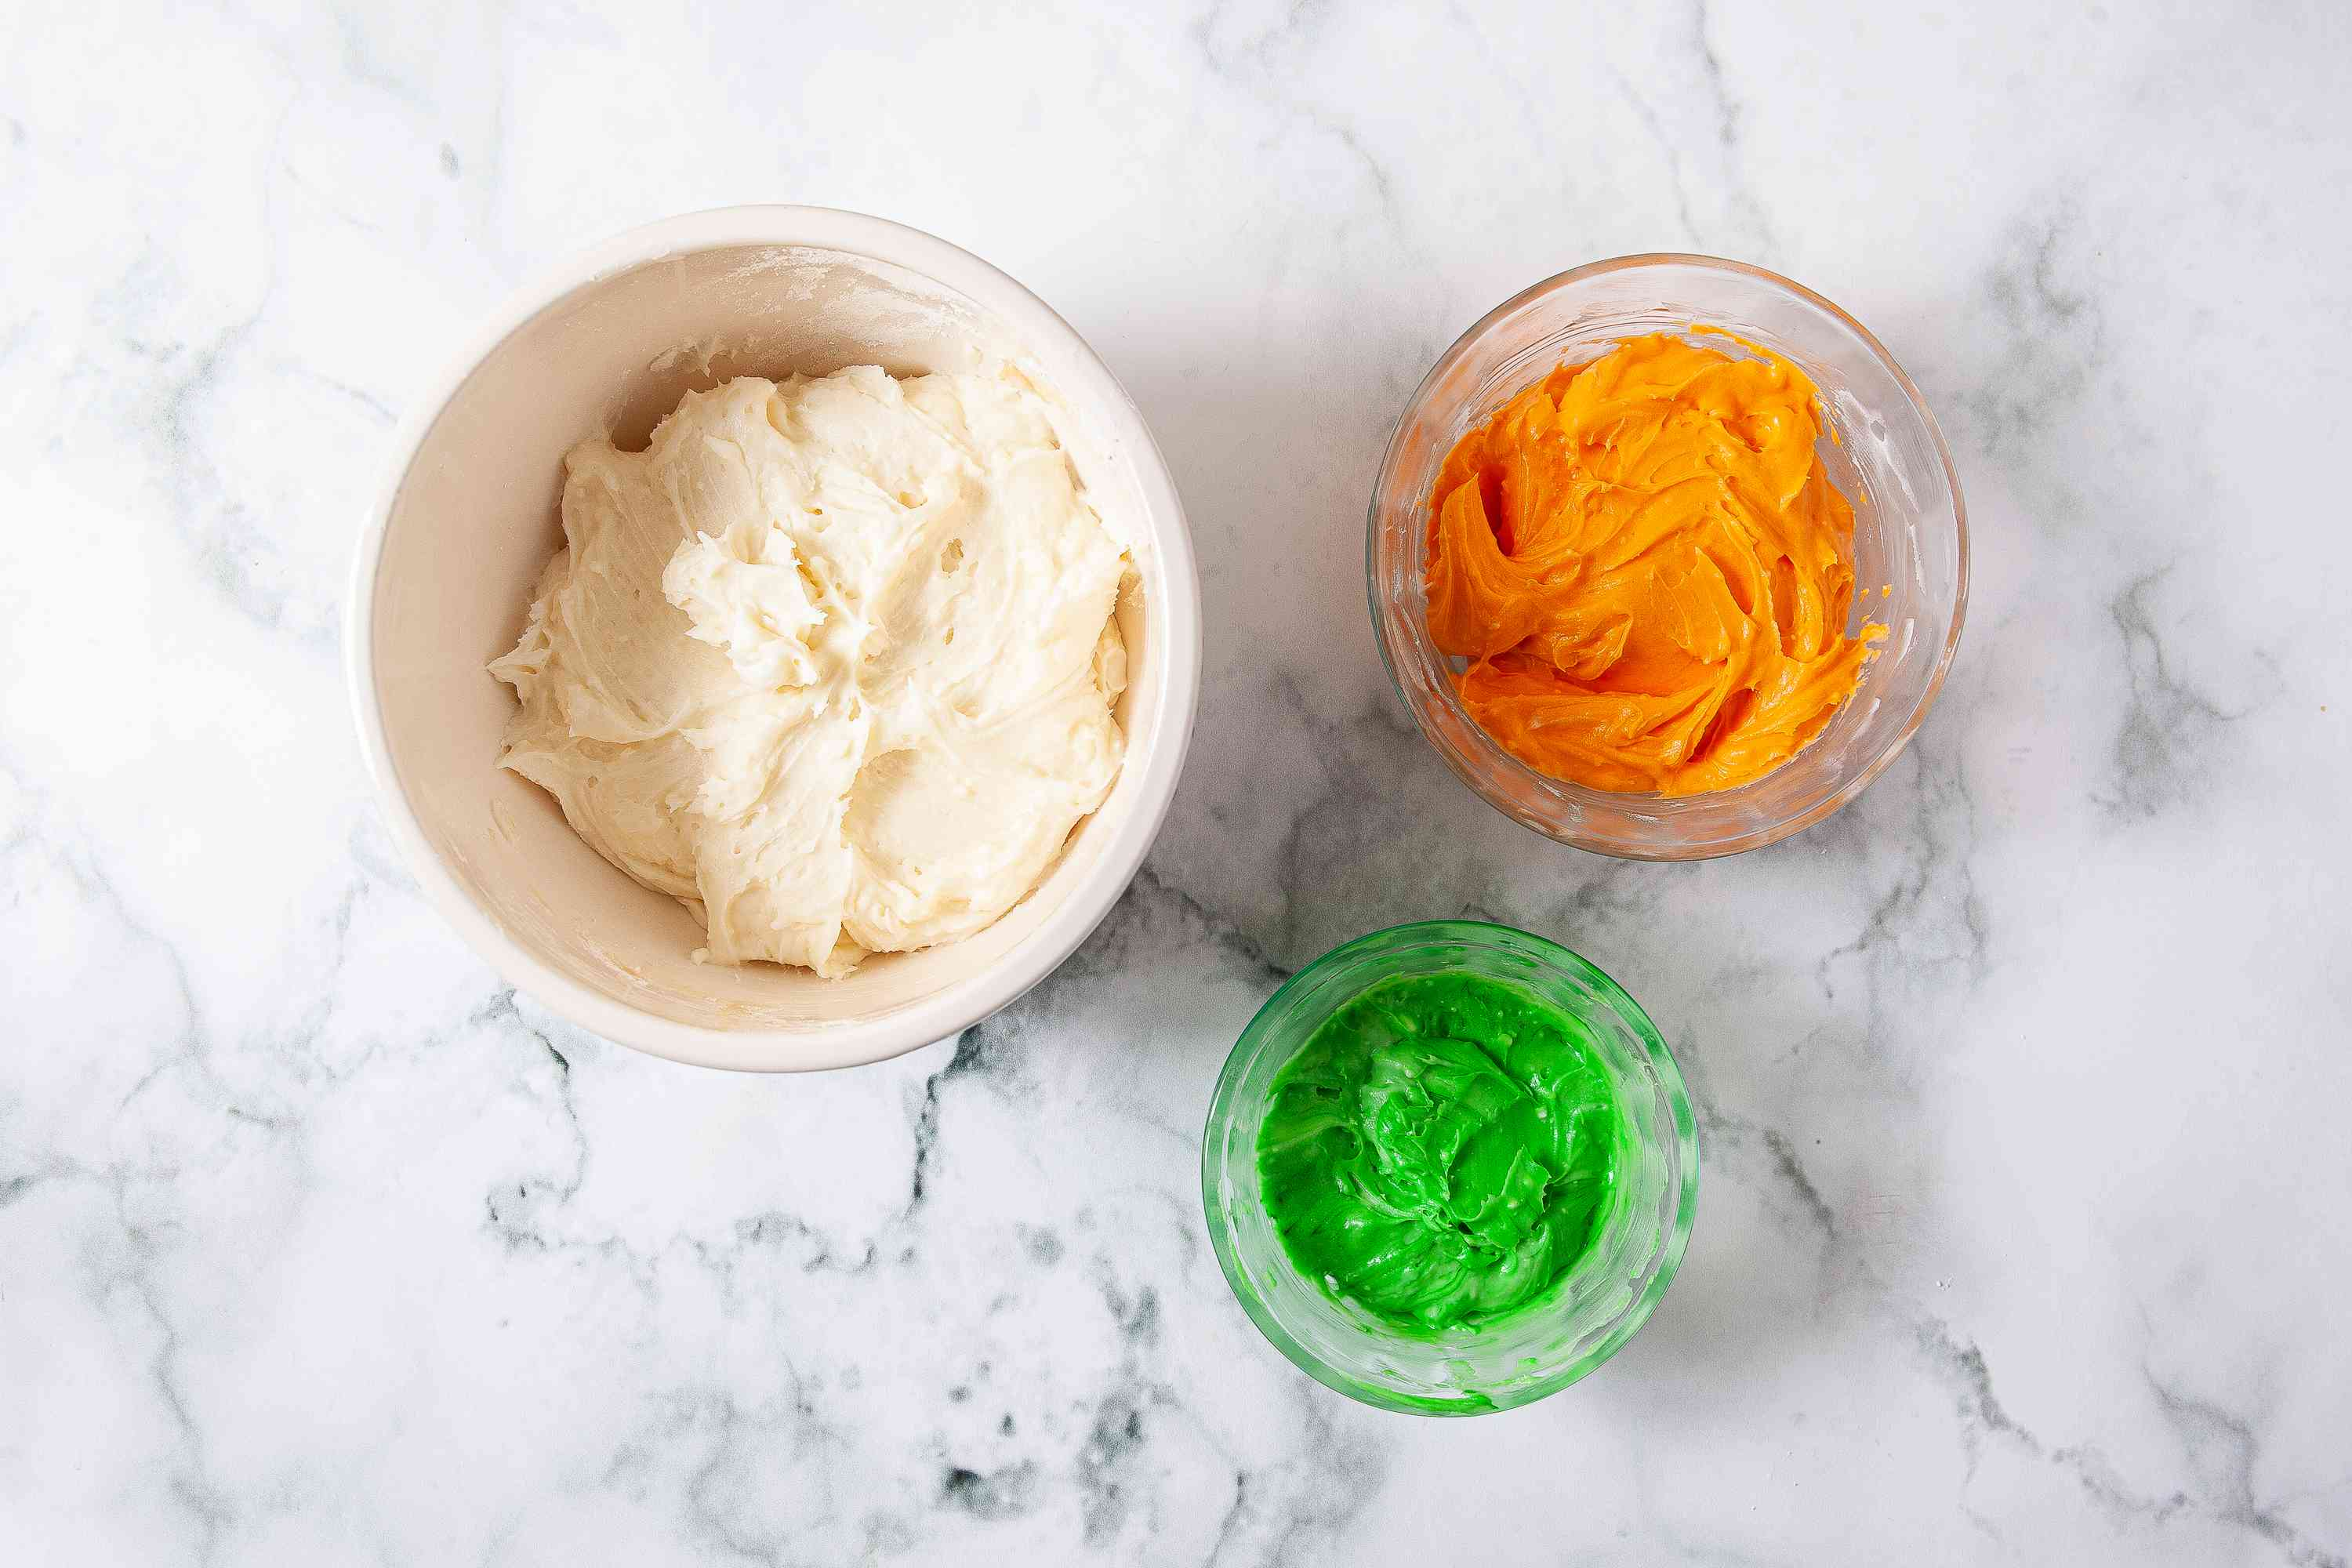 Frosting divided into three bowls with one green and one orange